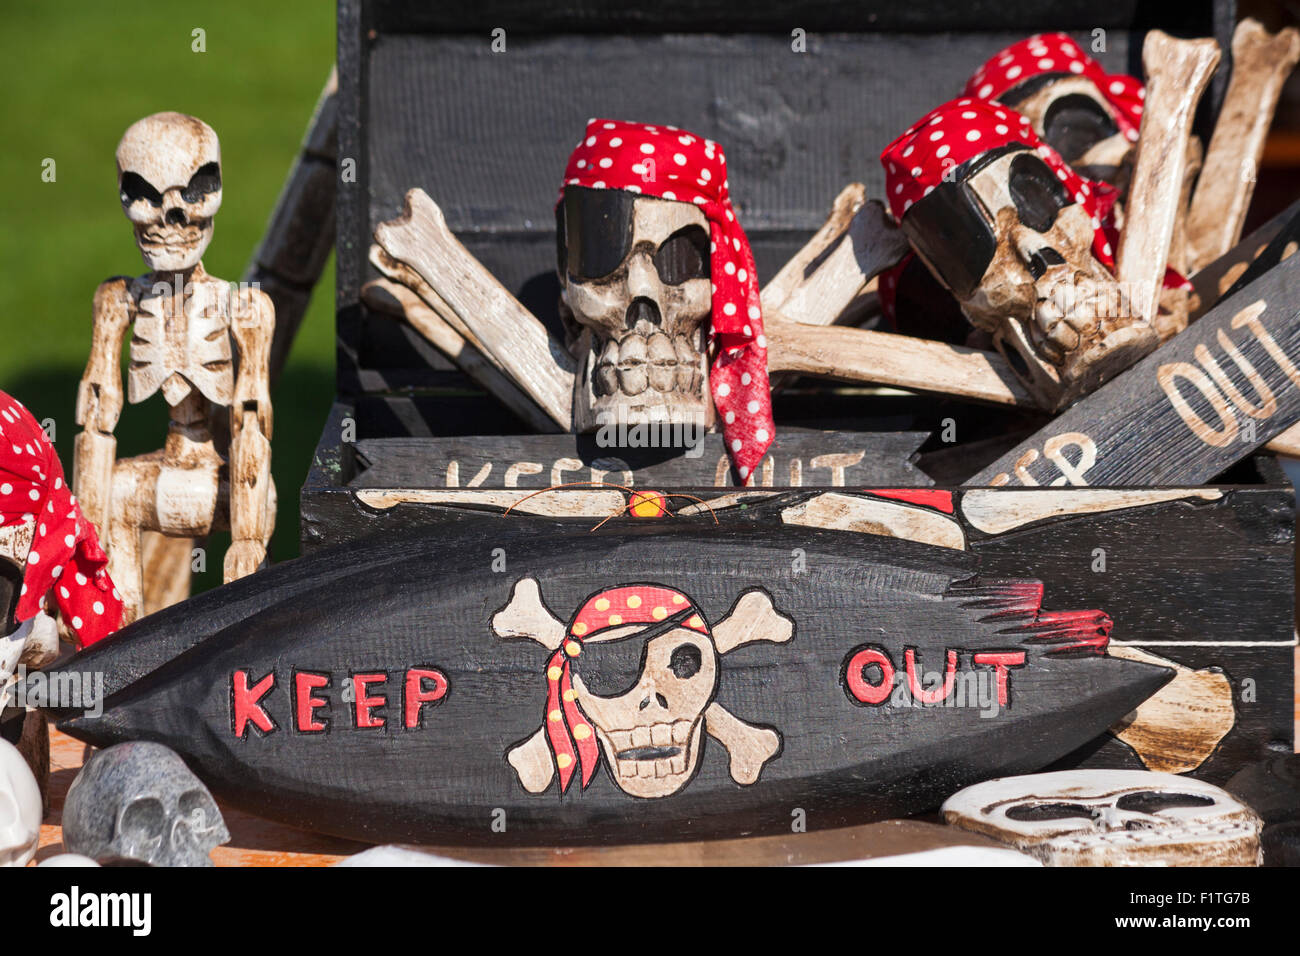 Keep out sign and skull & crossbones for sale on stall at Poole Thai Festival, Dorset, UK in September - Stock Image